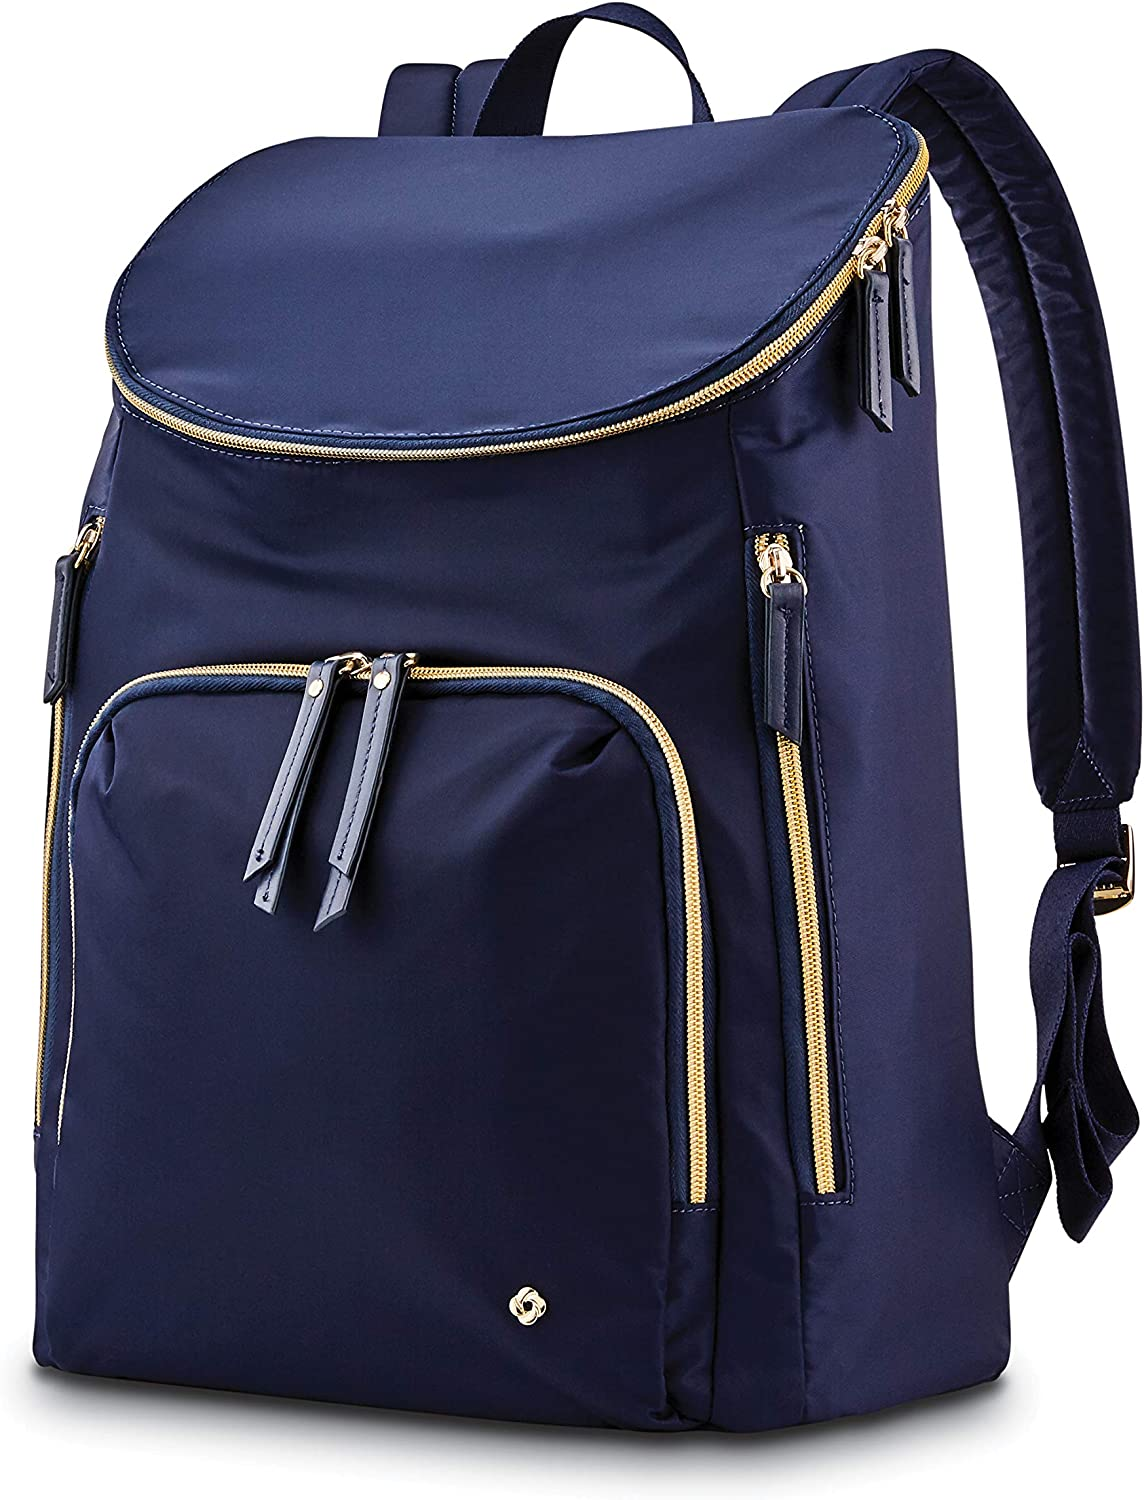 Samsonite Women's Mobile Solution Business Travel (Navy Blue, Deluxe Backpack)